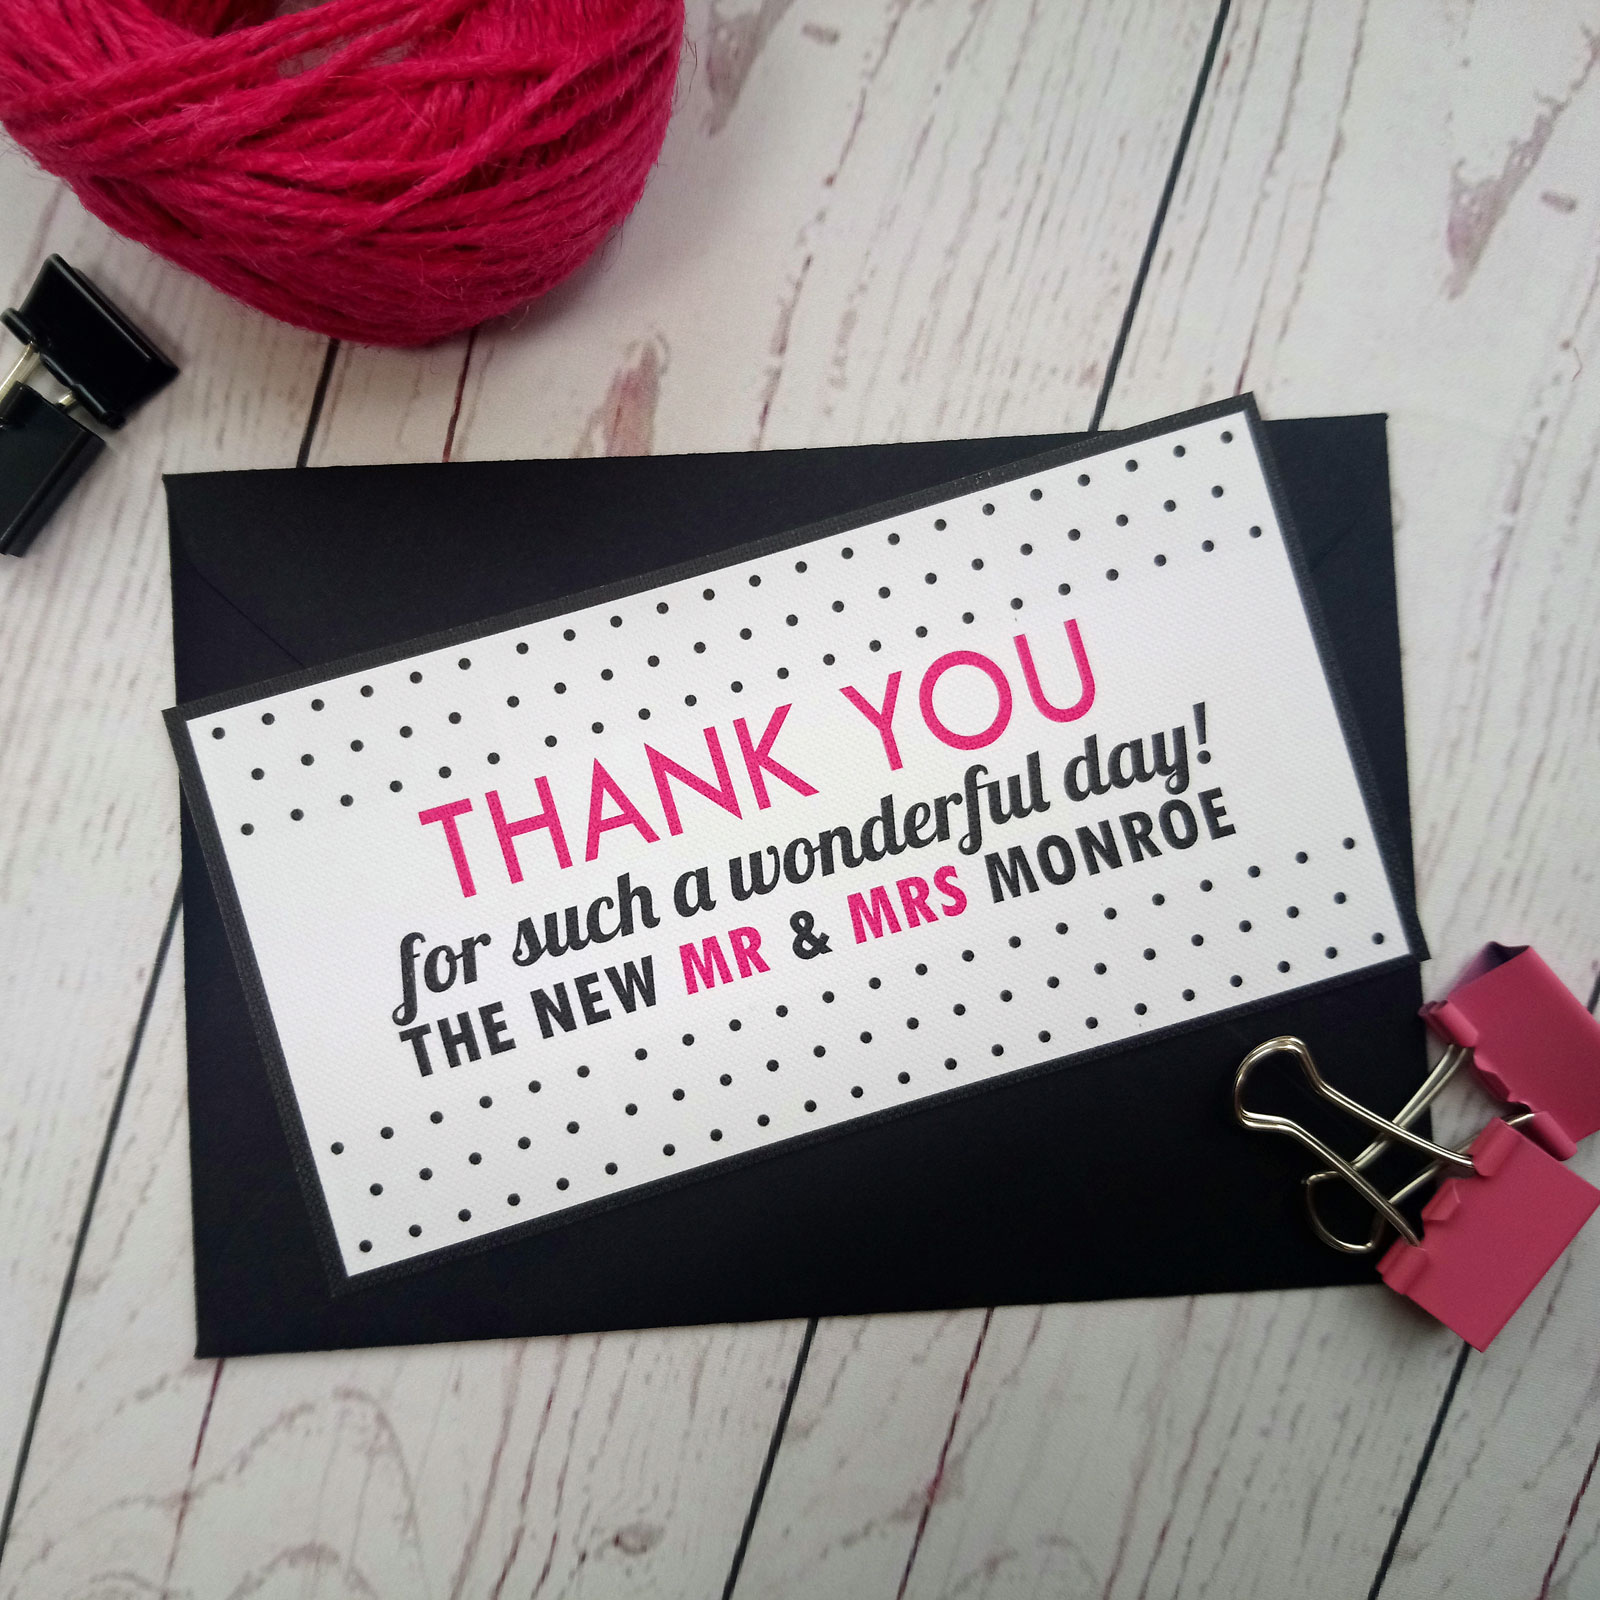 Polka Dot Thank You Card in blak and fuchsia with black envelope